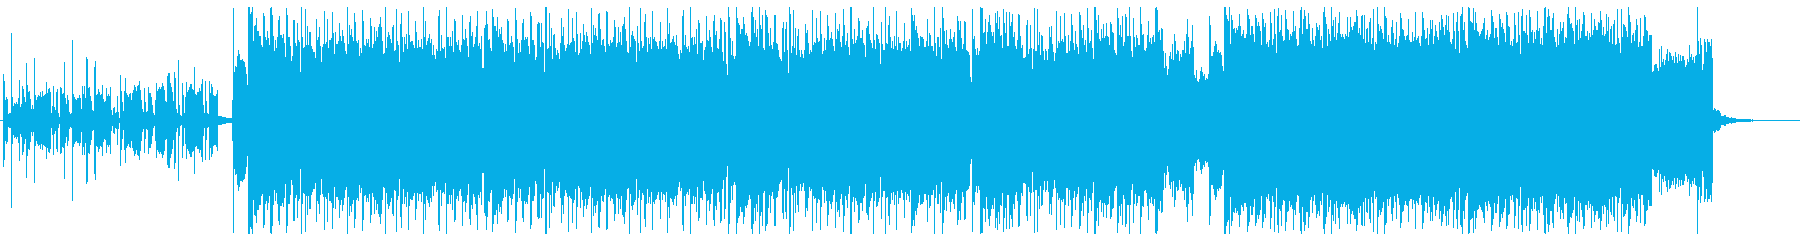 Simple and refreshing lock's reproduced waveform